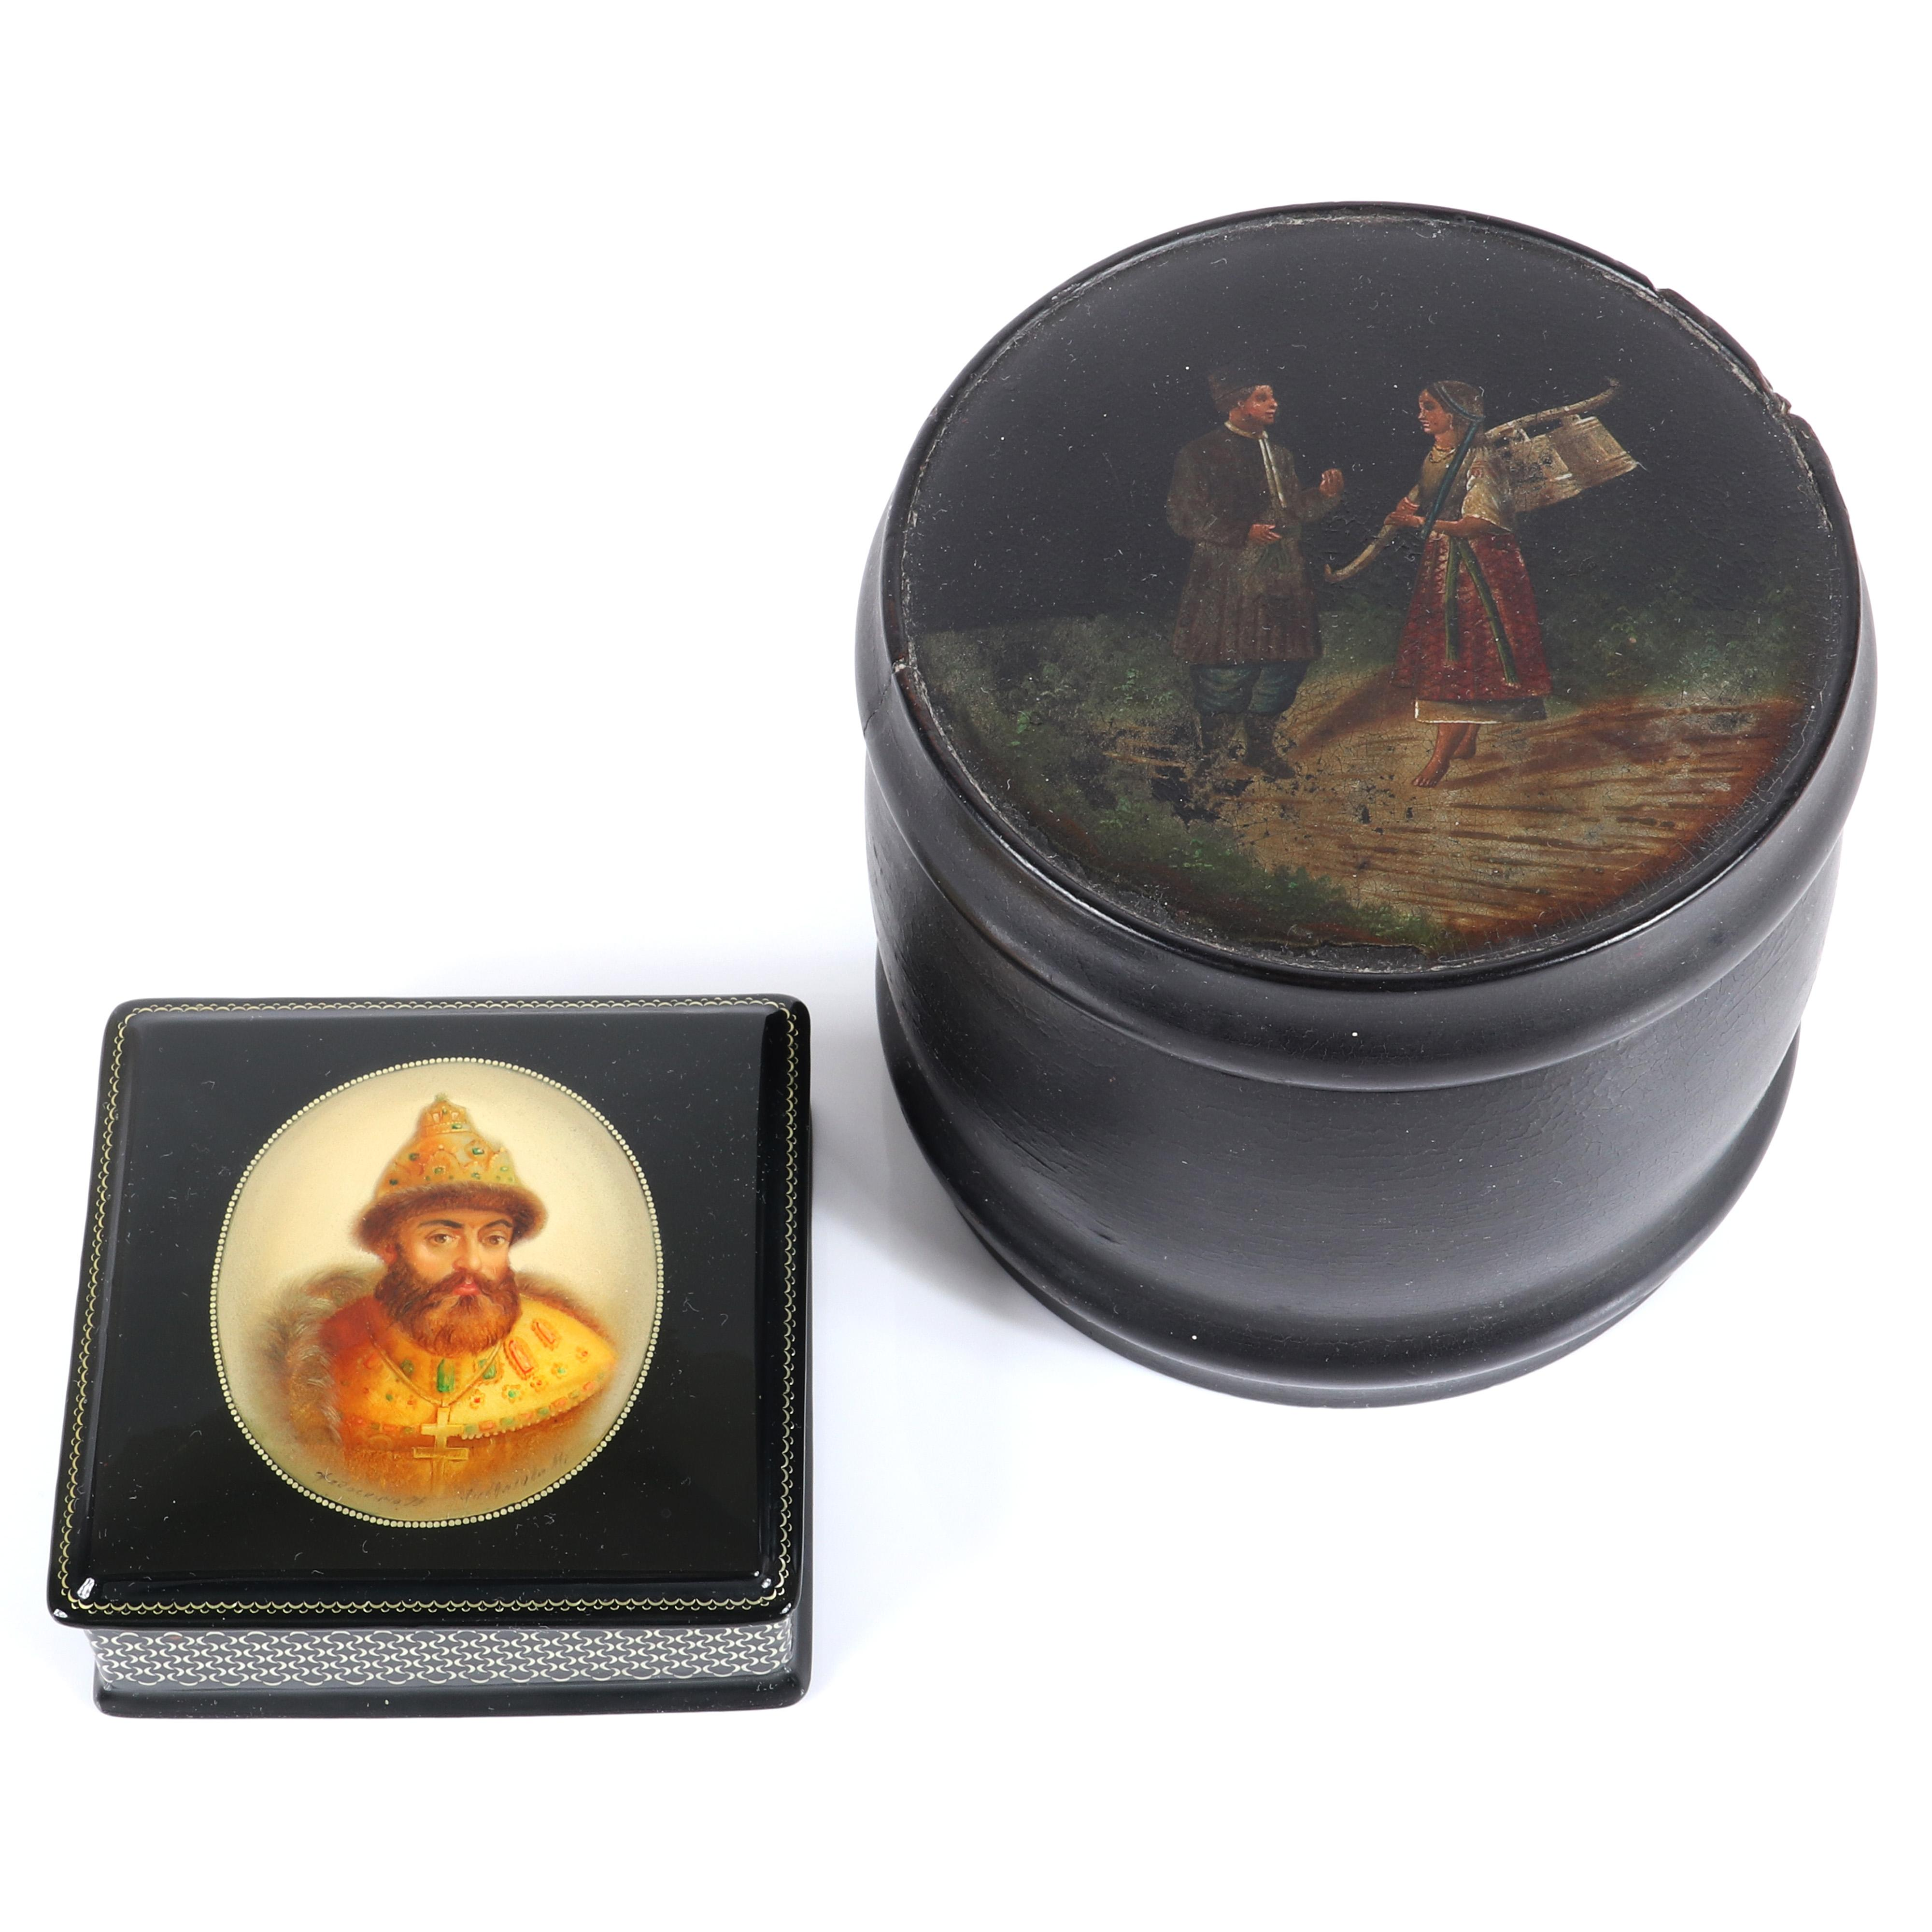 "Two Russian hand painted lacquer boxes: Fedoskino with mother of pearl portrait of Tsar Michael Romanov. Signed Cherkasova and dated 1895, and round box with two figures with stamp under lid. 1 1/4""H x 3 1/2""W x 3 1/2""D"